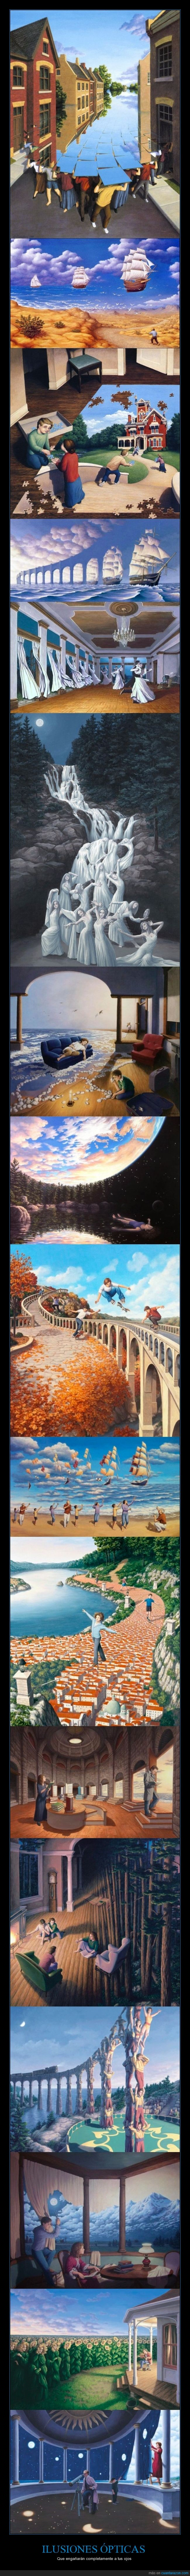 ilusion optica,rob gonsalves